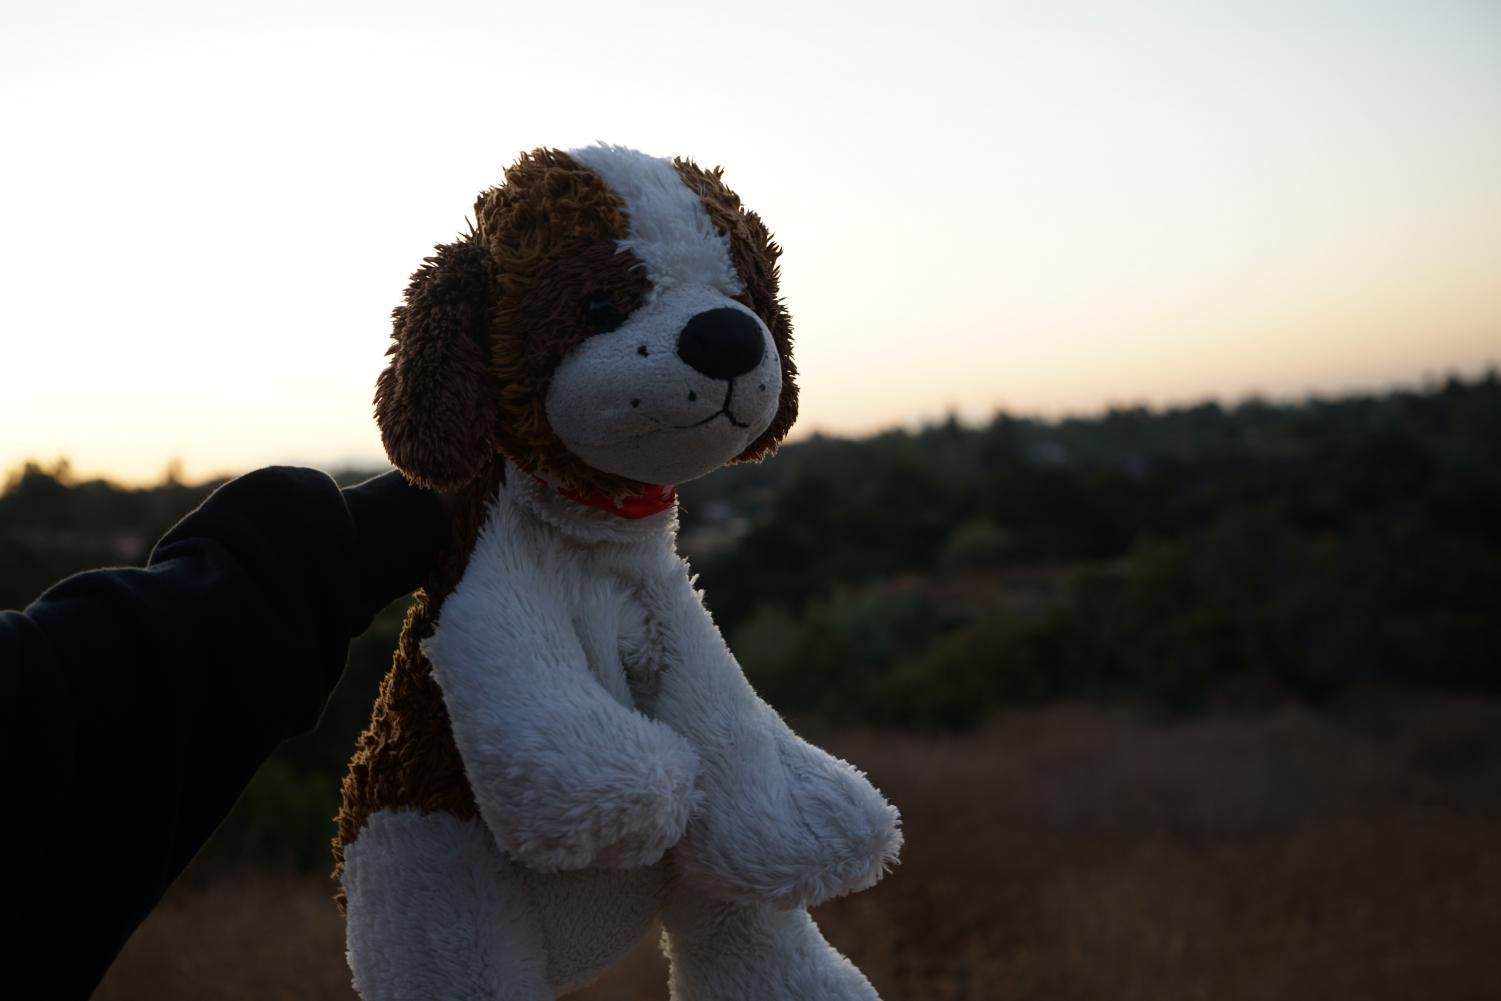 A+blanket%2C+stuffed+animal%2C+and+happy+mindset+is+the+key+to+enjoying+a+chilly+morning+up+the+hill.